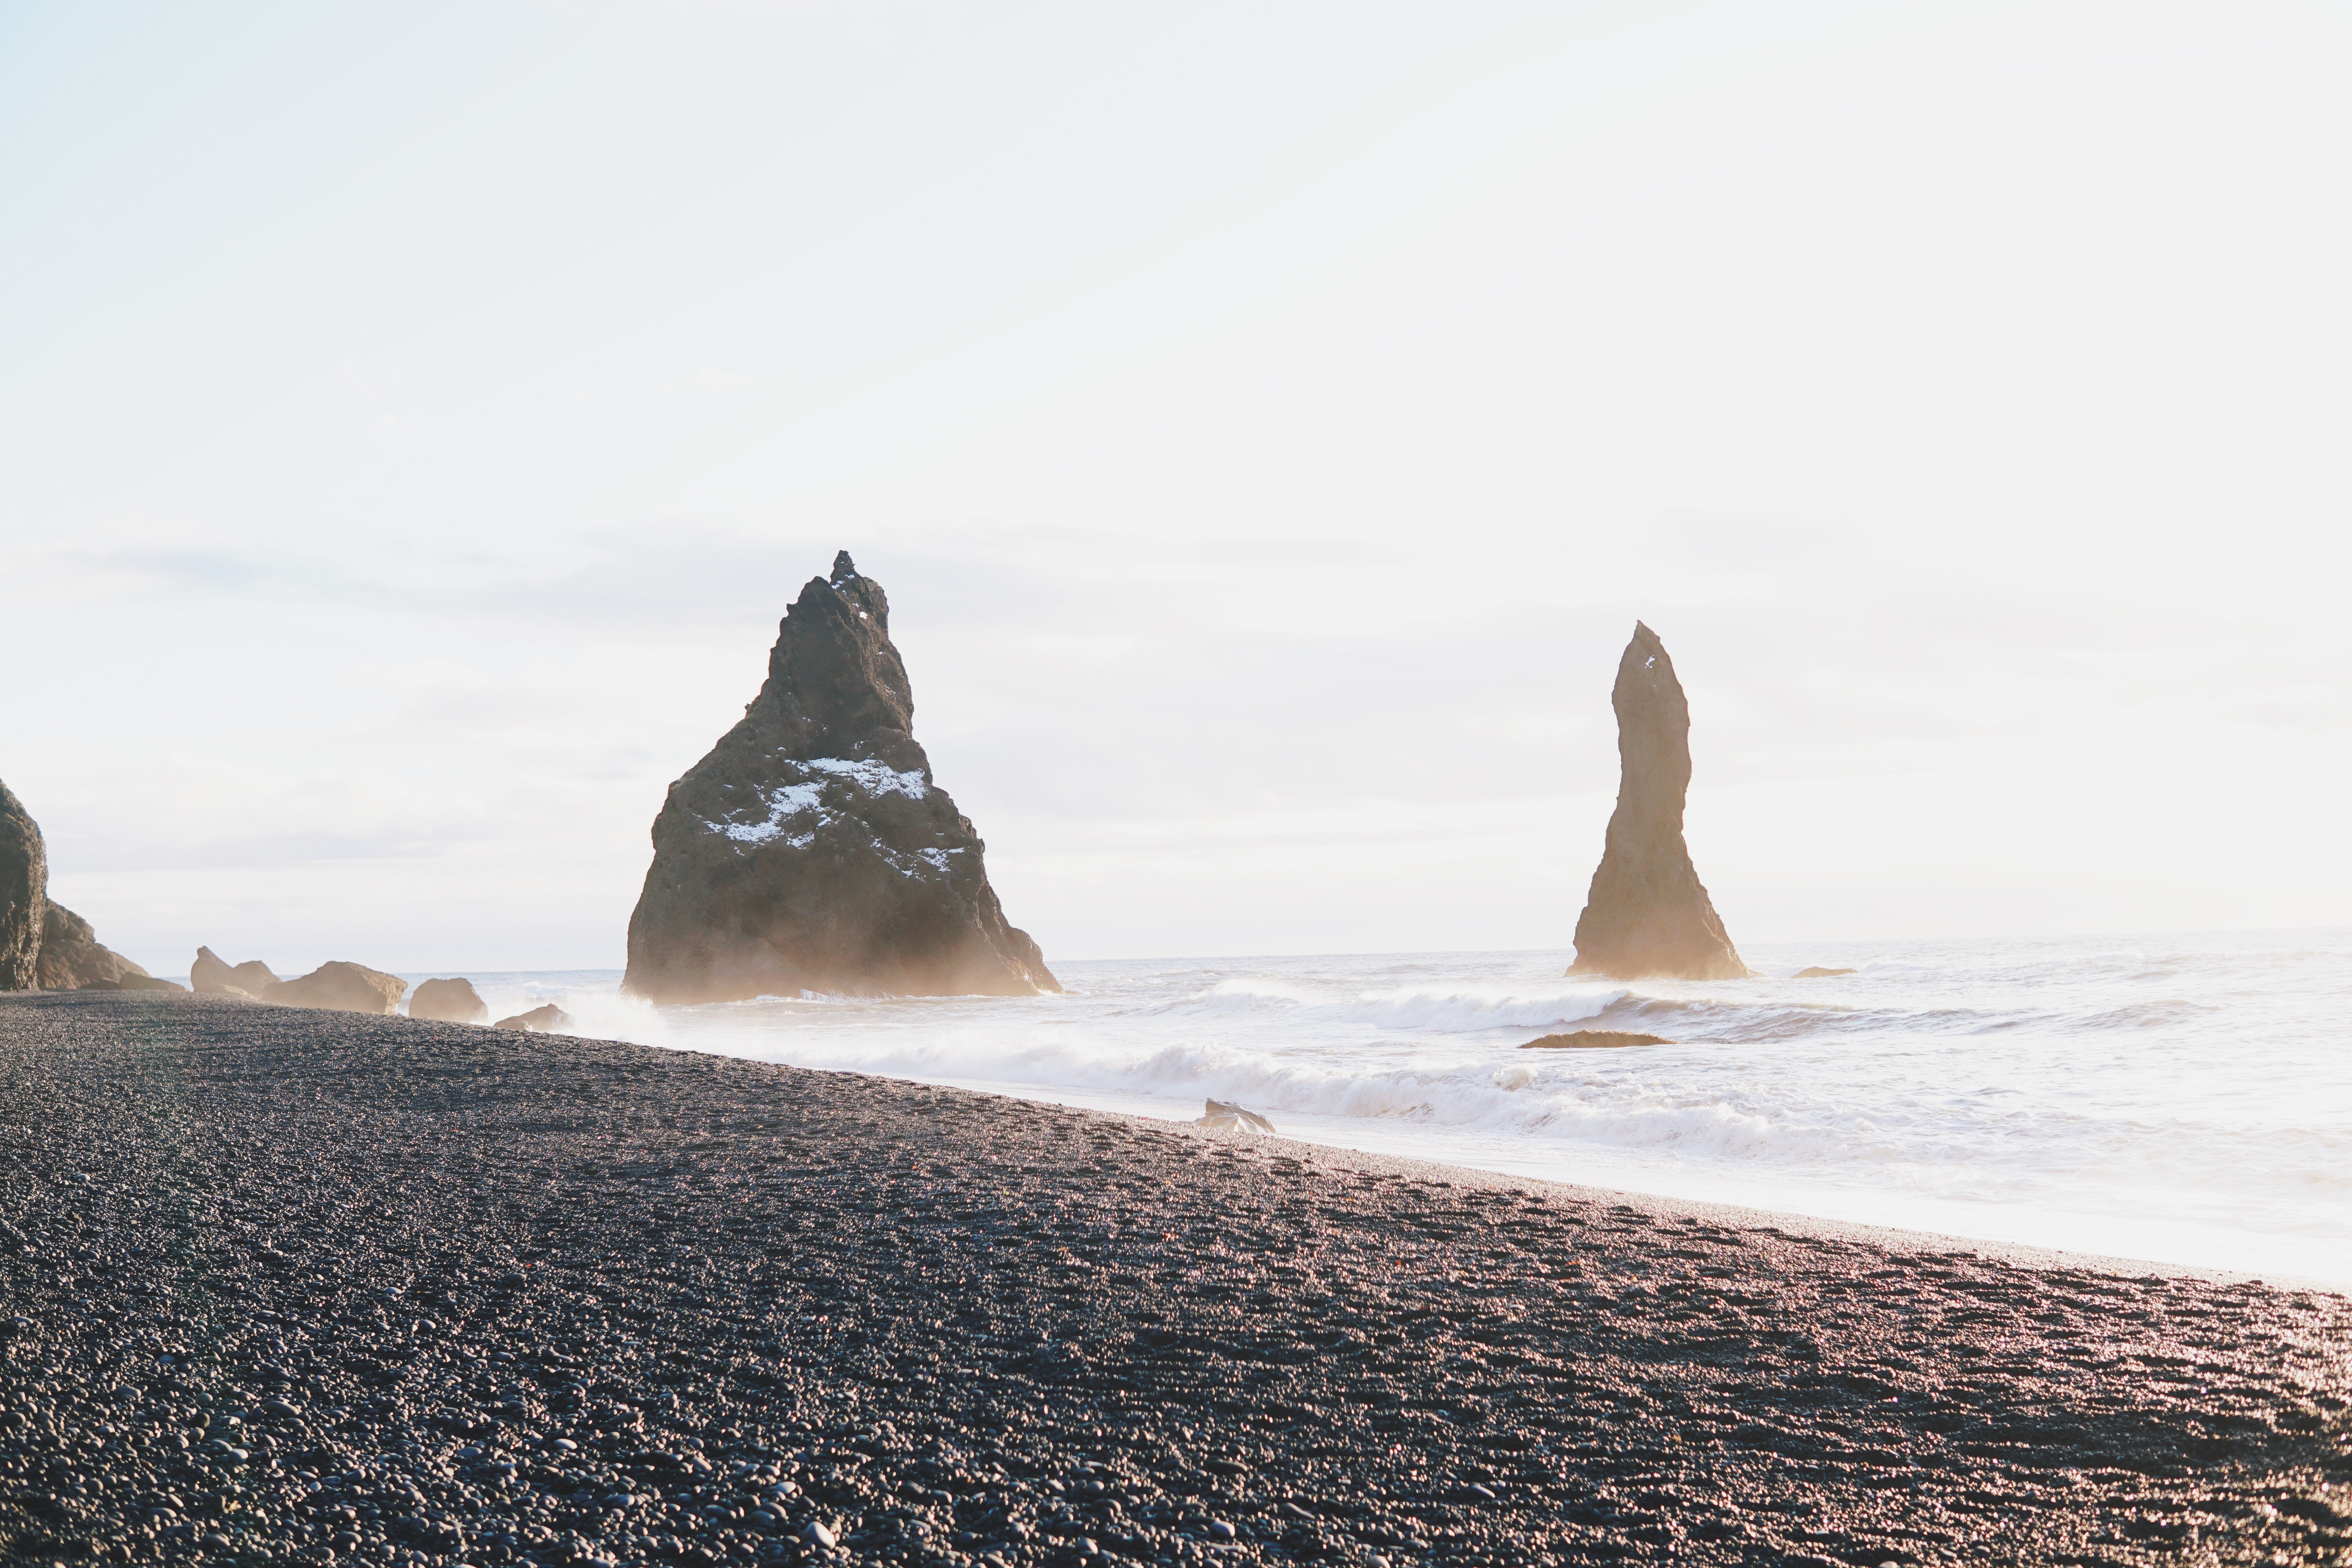 two black rock formations near shore at daytime